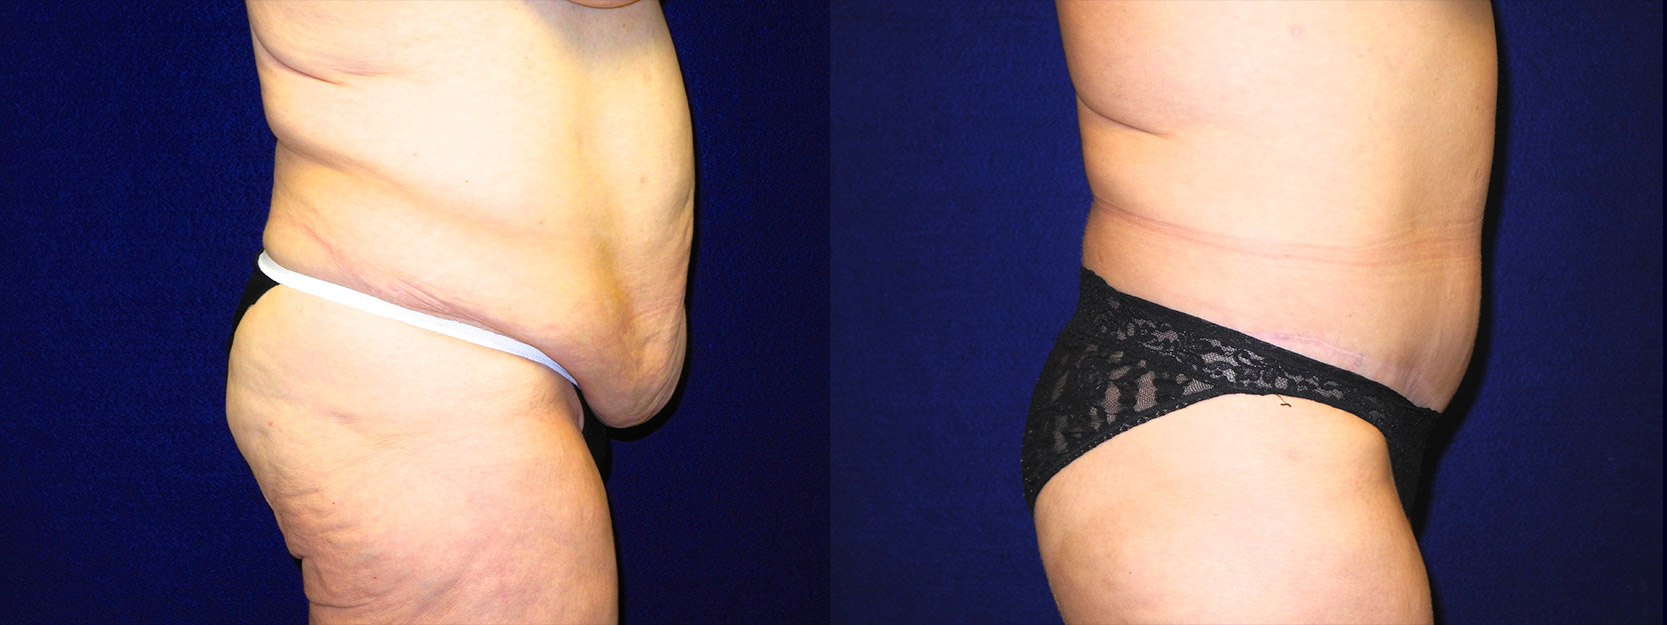 Right Profile View - Tummy Tuck After Massive Weight Loss